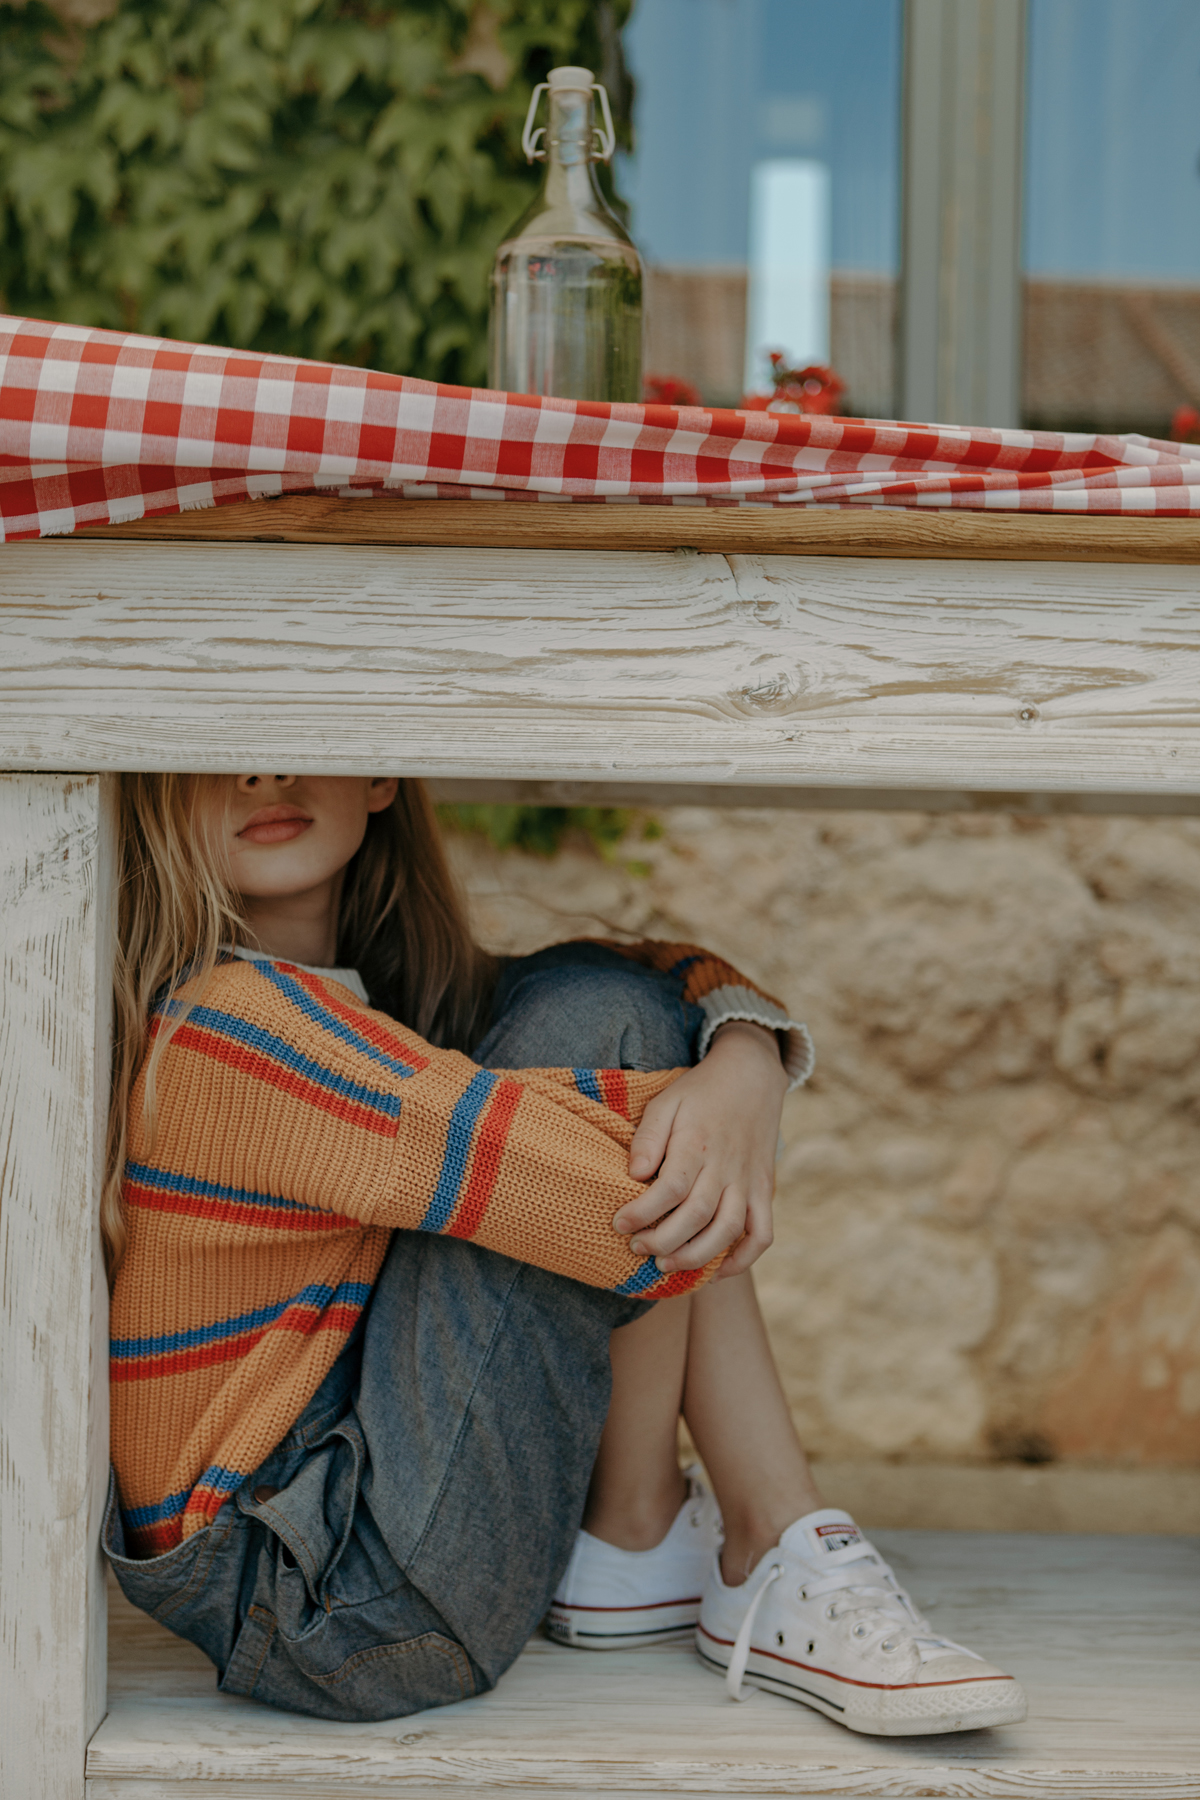 SS20_Dolce far niente_TINYCOTTONS_HR28